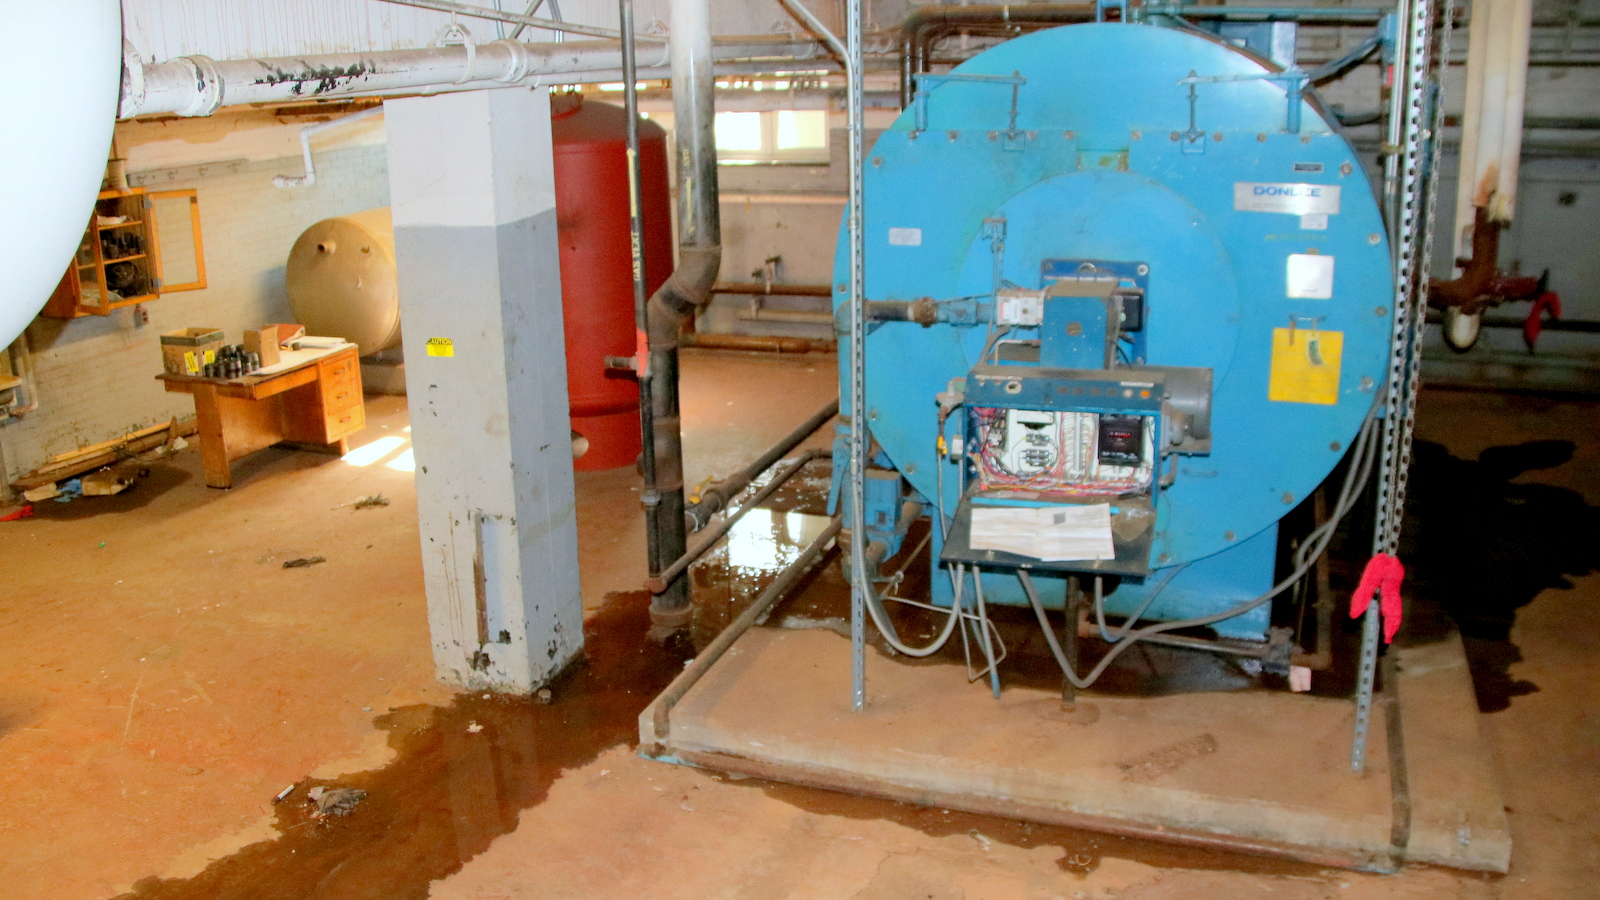 Two of the three boilers at Frederick Douglass High School, including this one, were not working Saturday. (Fern Shen)